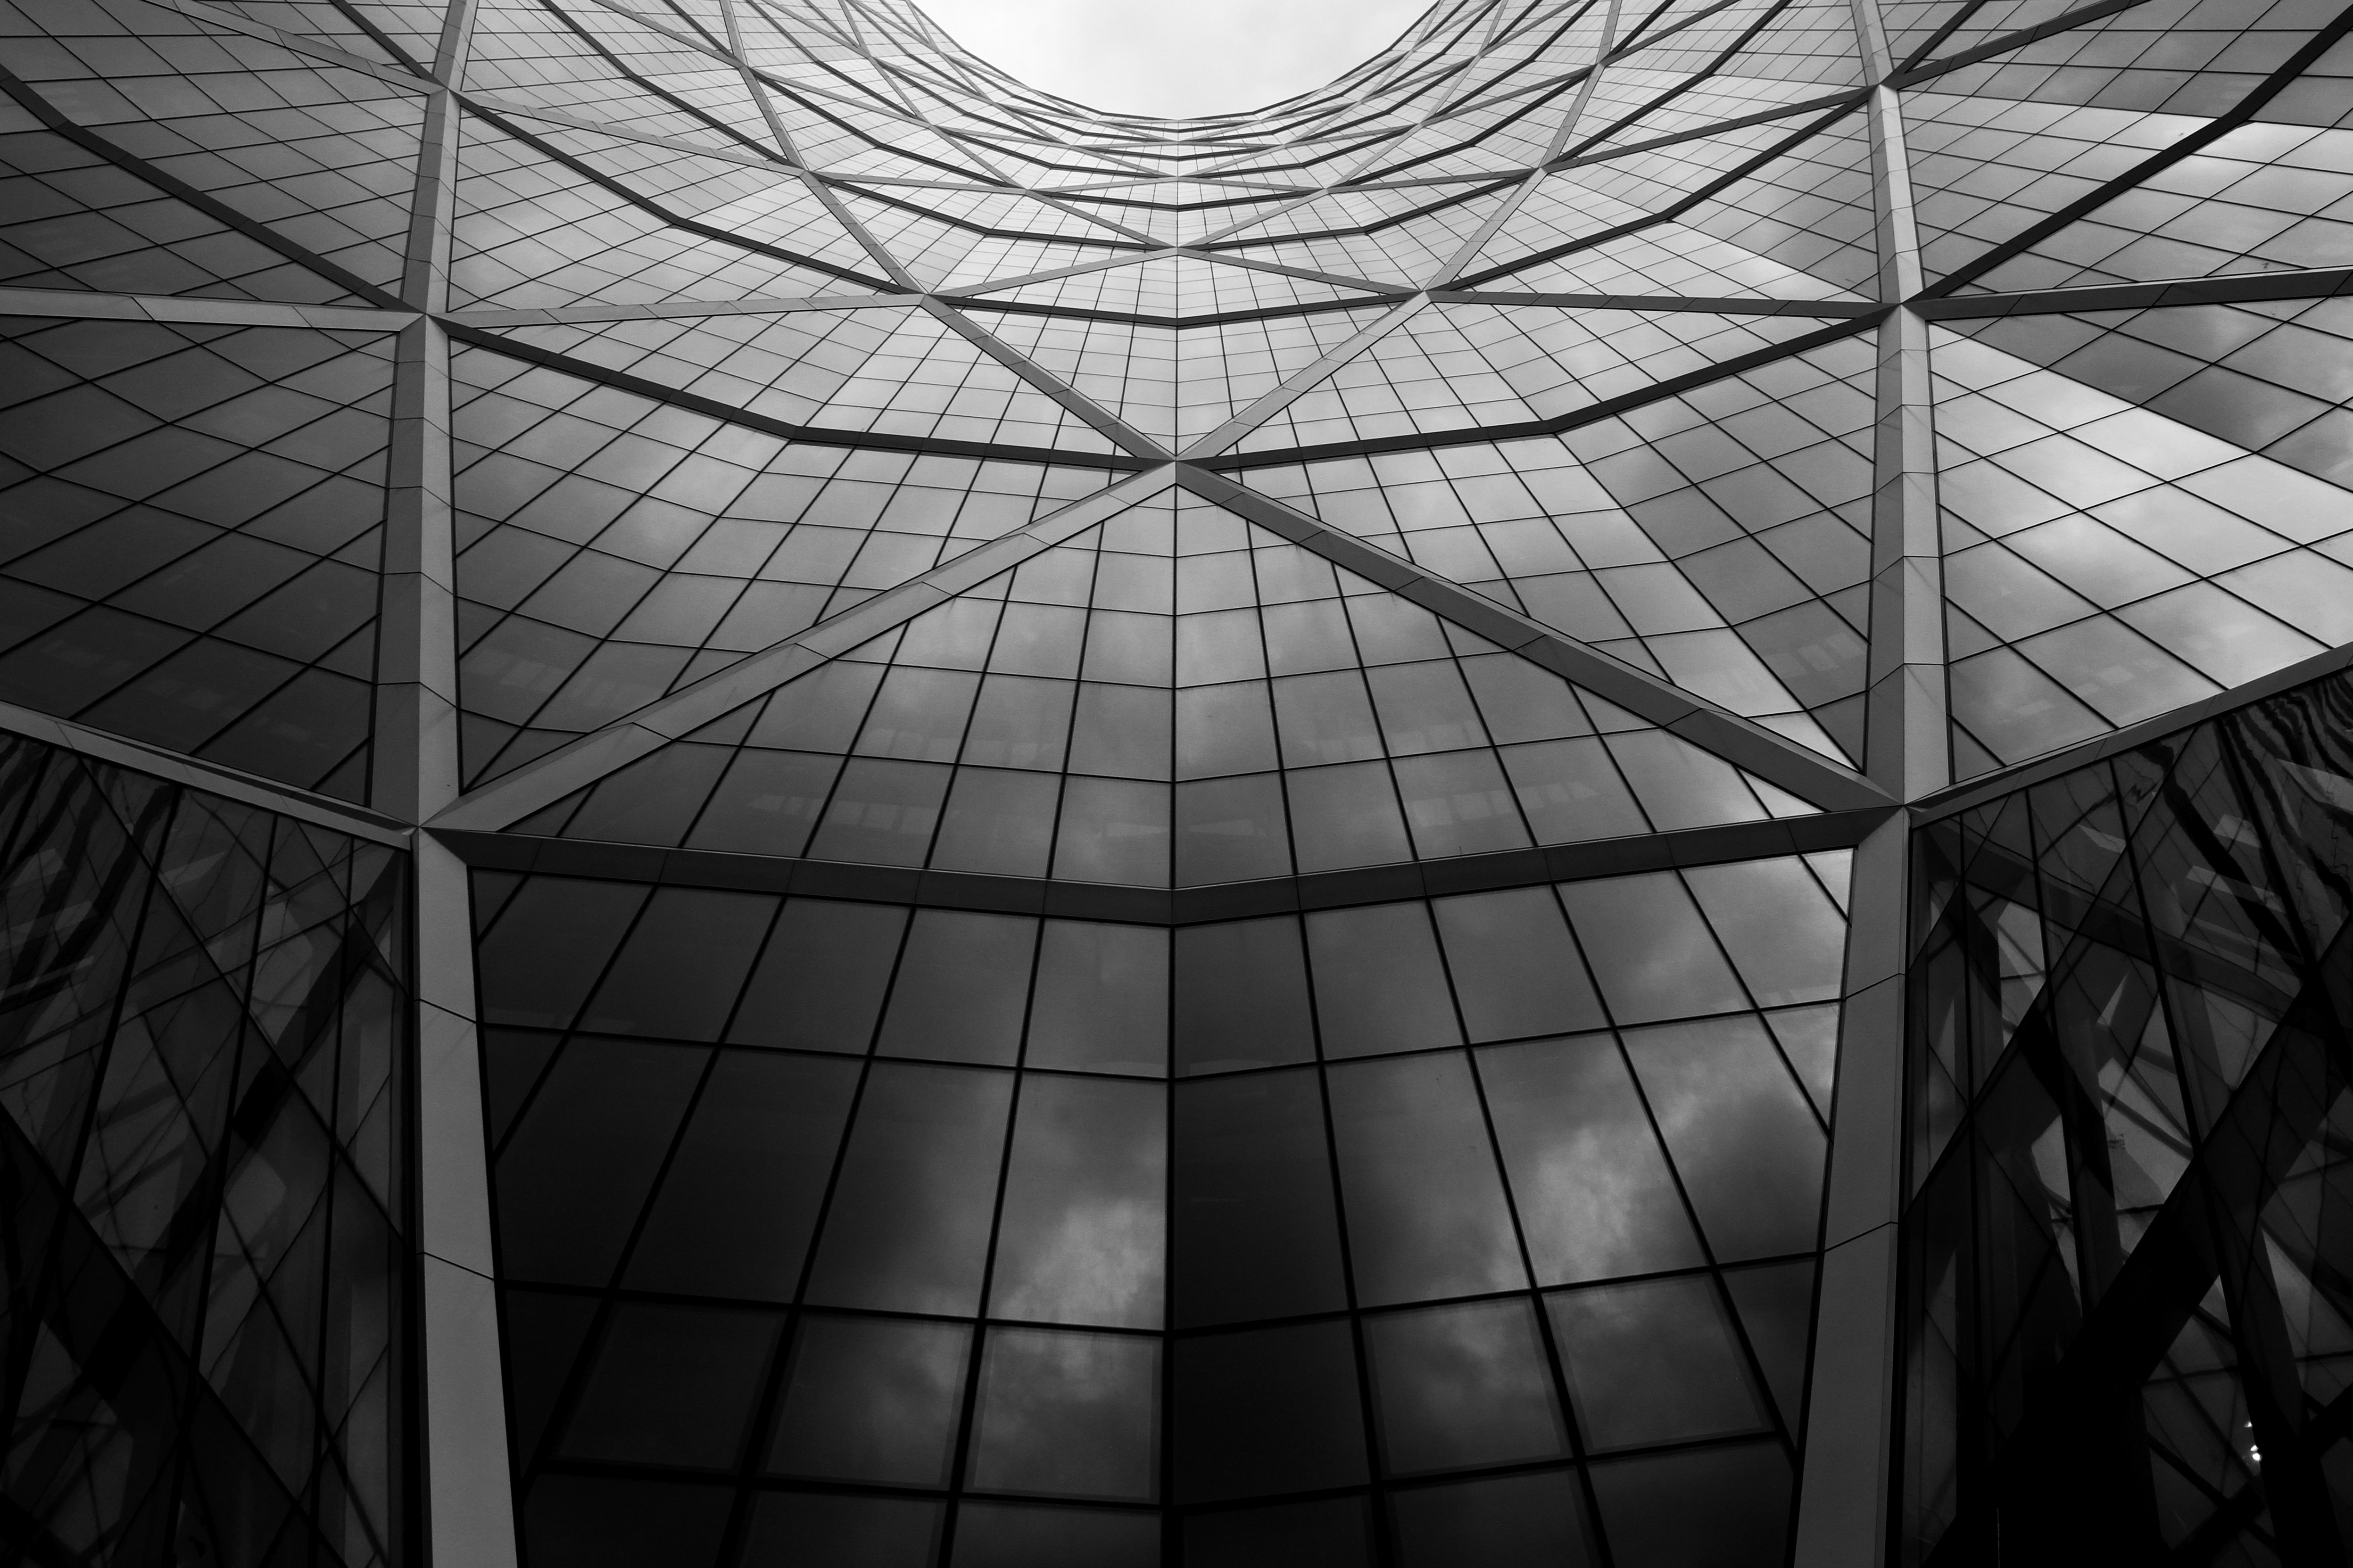 Black and white shot of glass building architecture with windows and skylight in Calgary